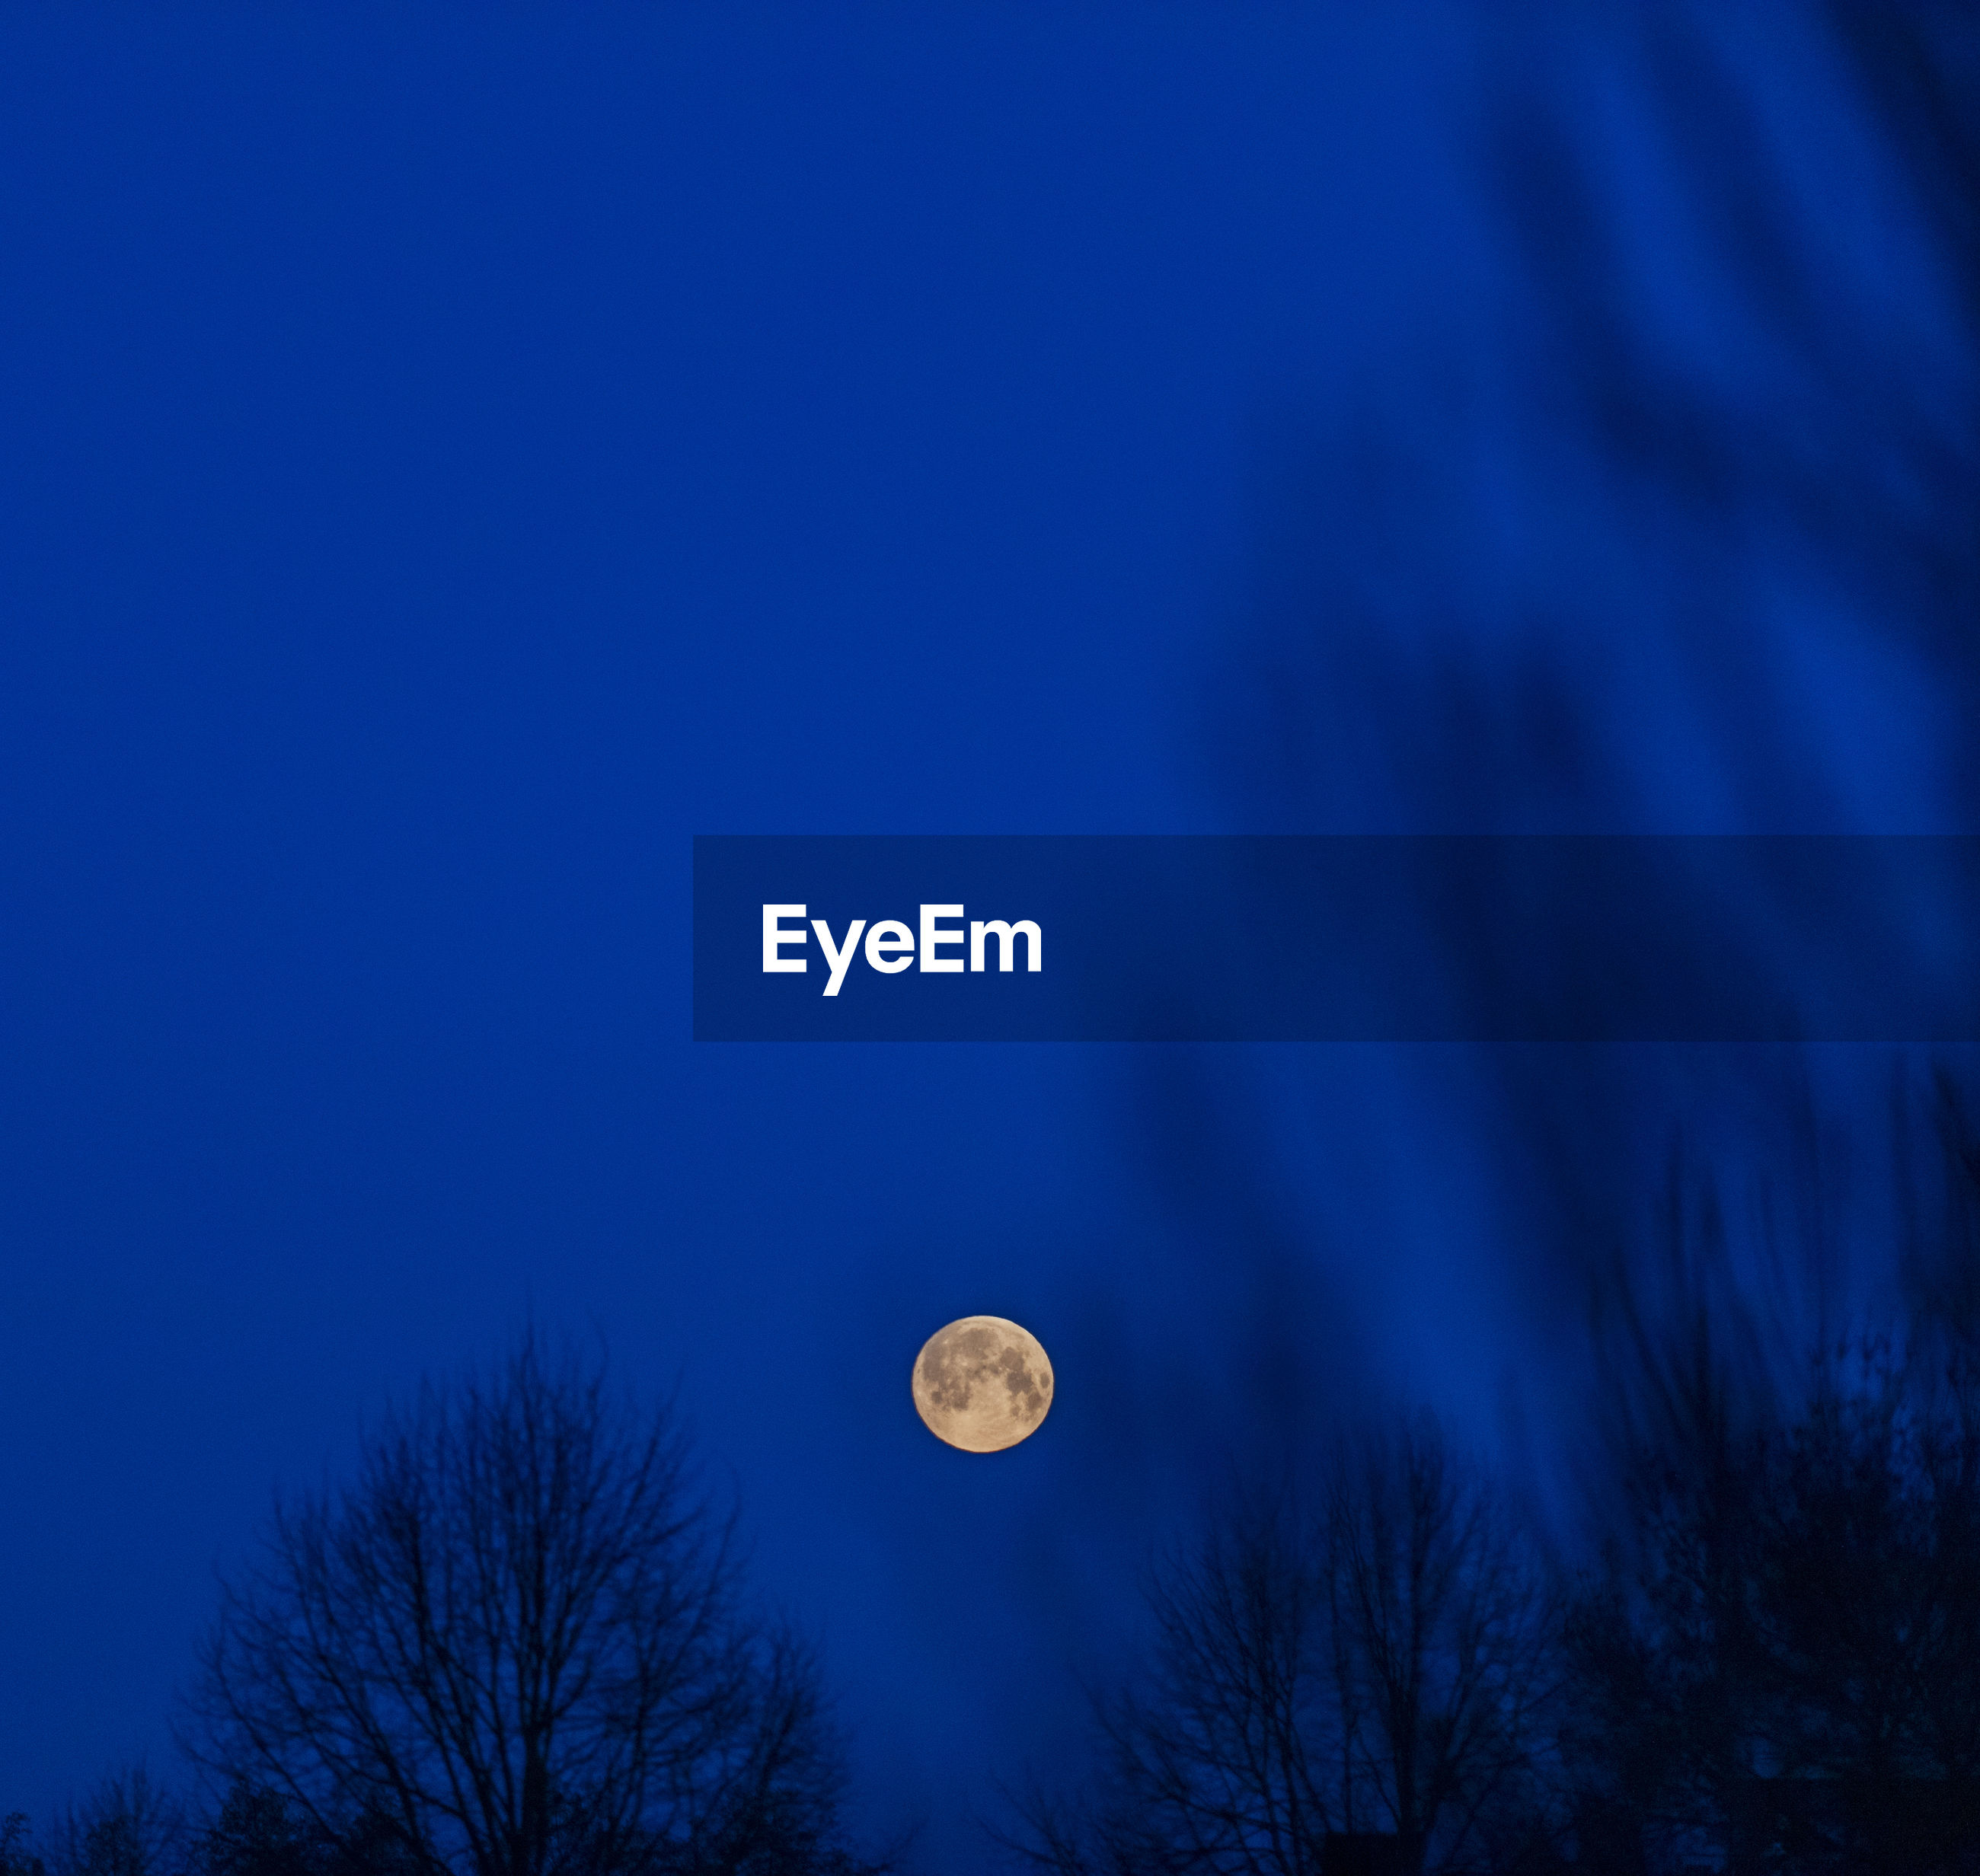 LOW ANGLE VIEW OF MOON AND TREES AGAINST SKY